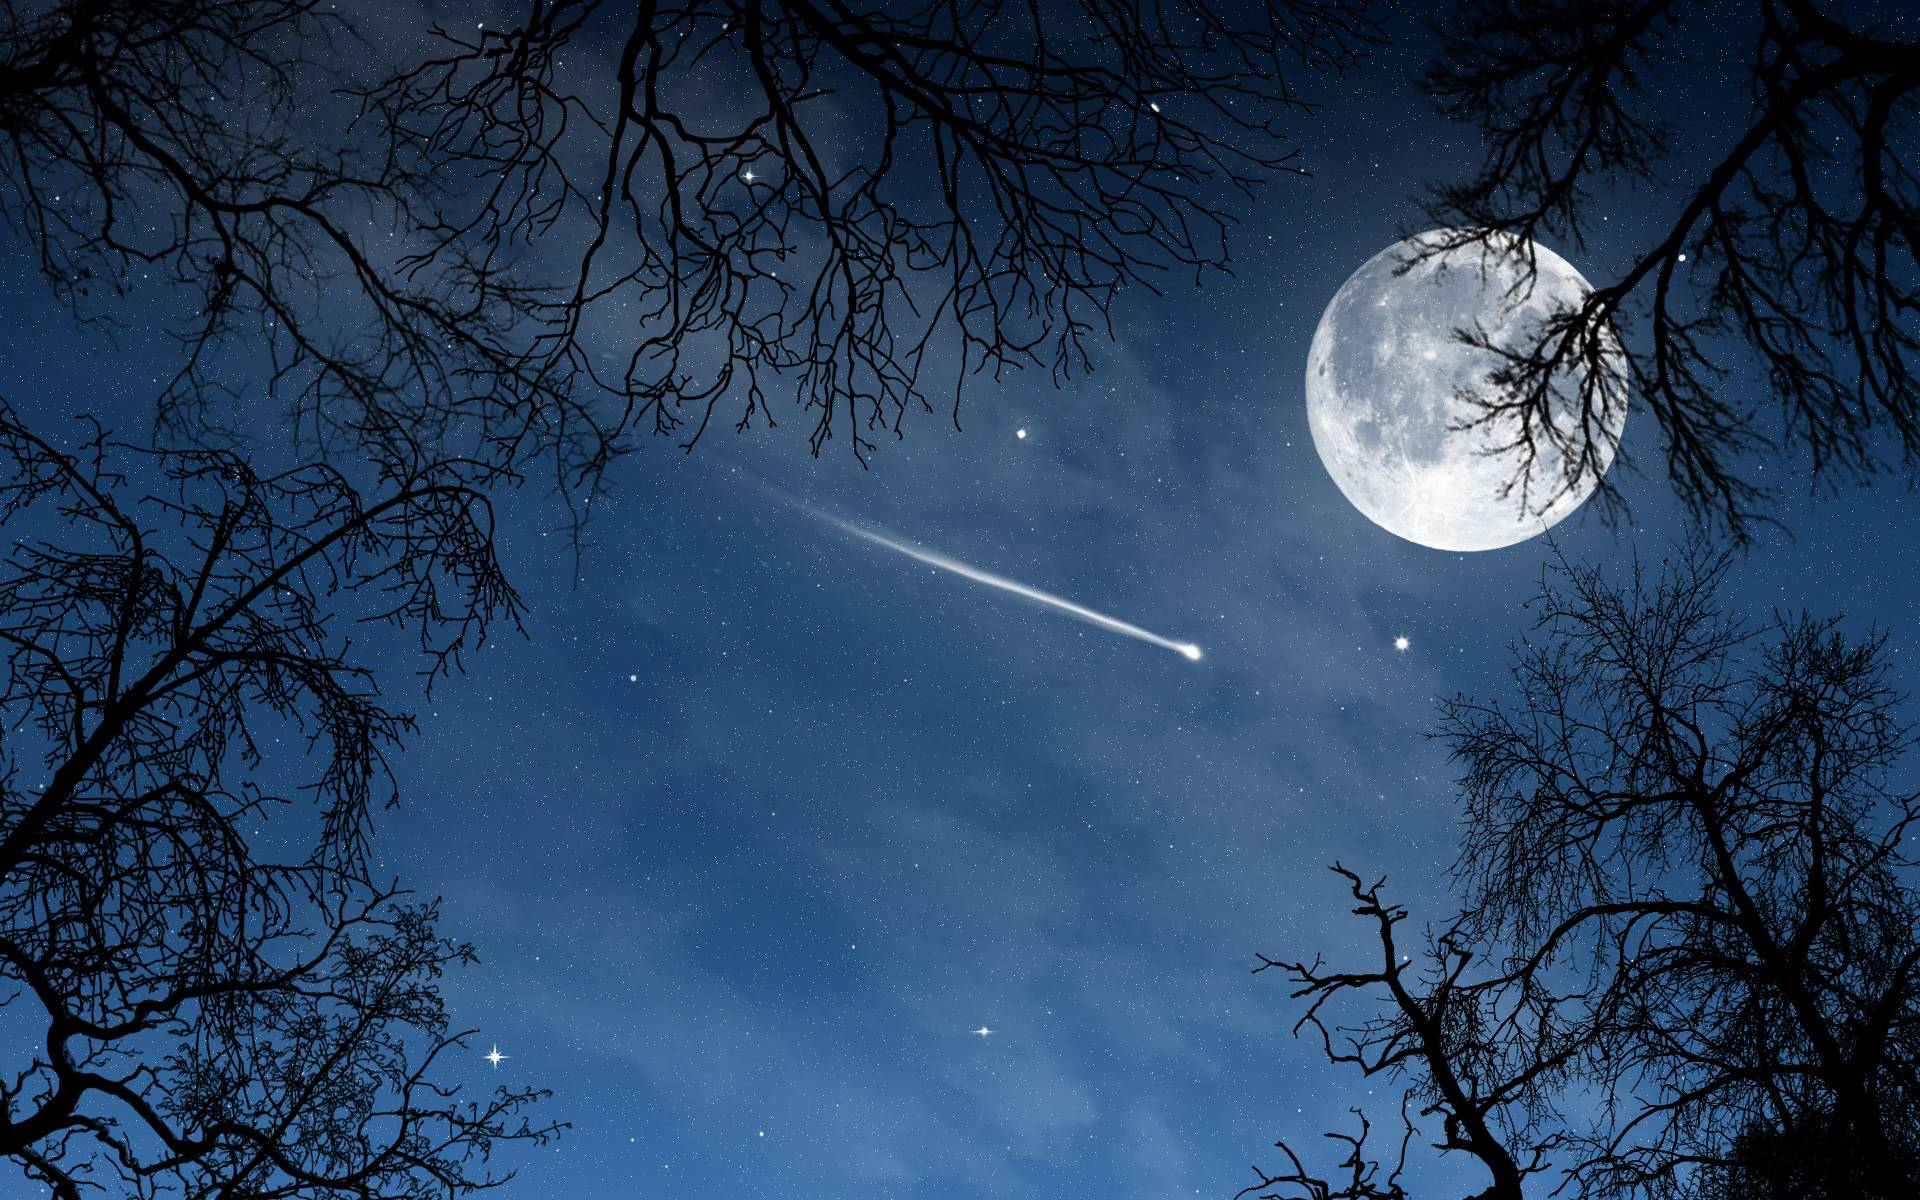 moonshooting star